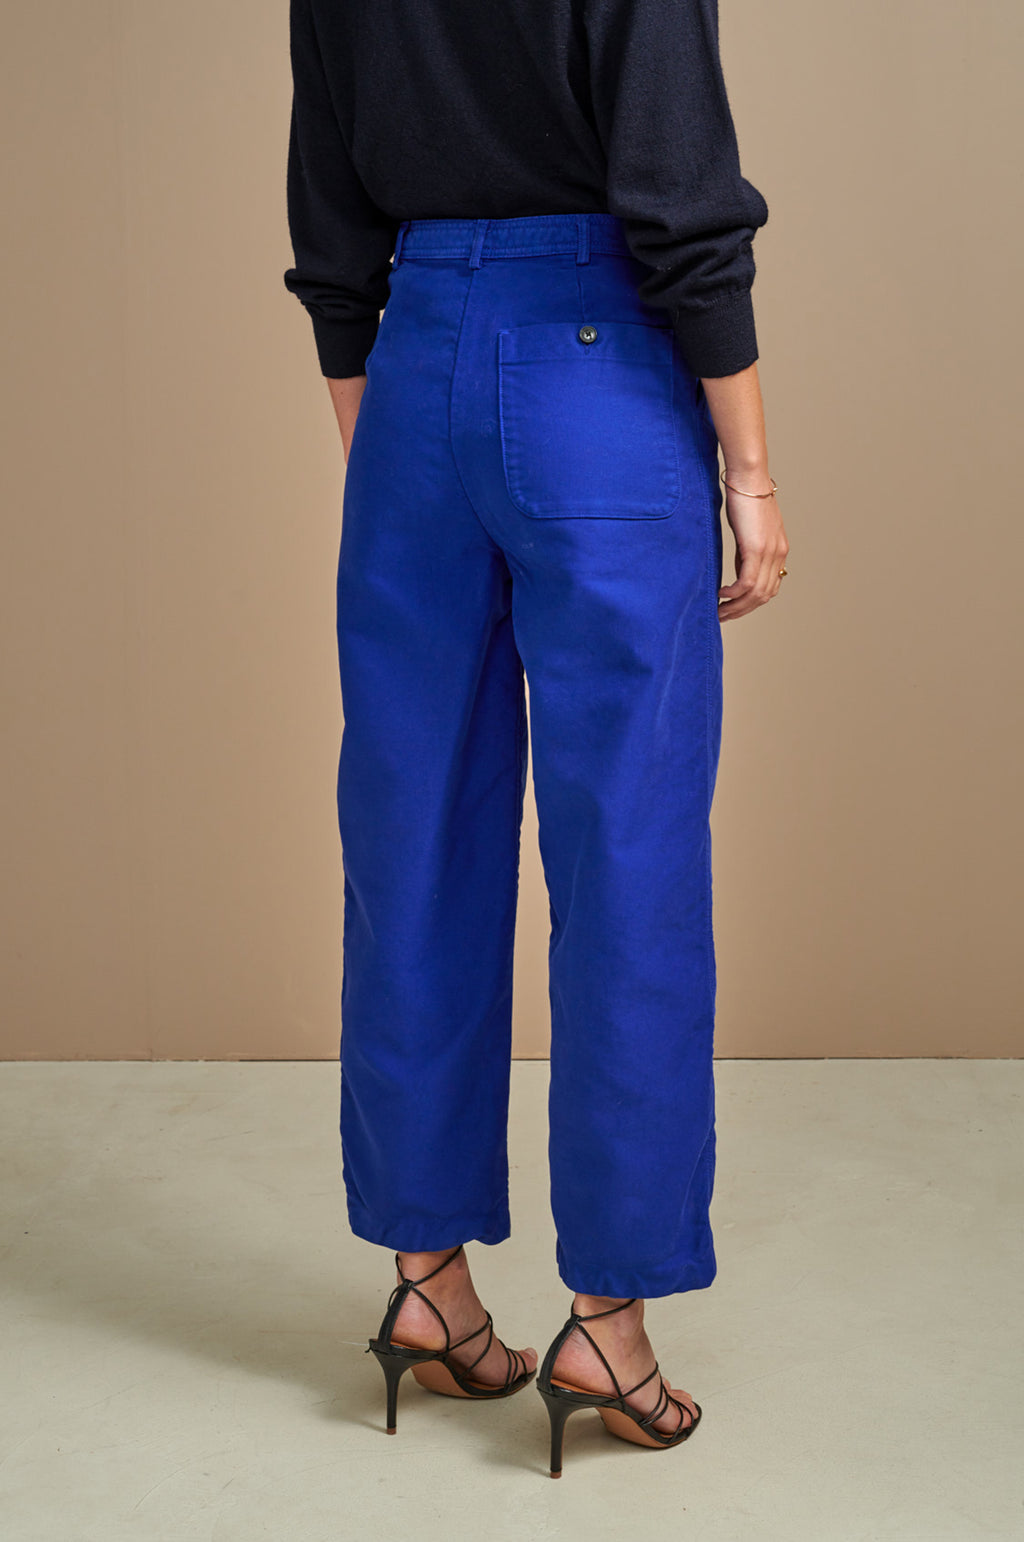 Pollock Pants in Ultramarine